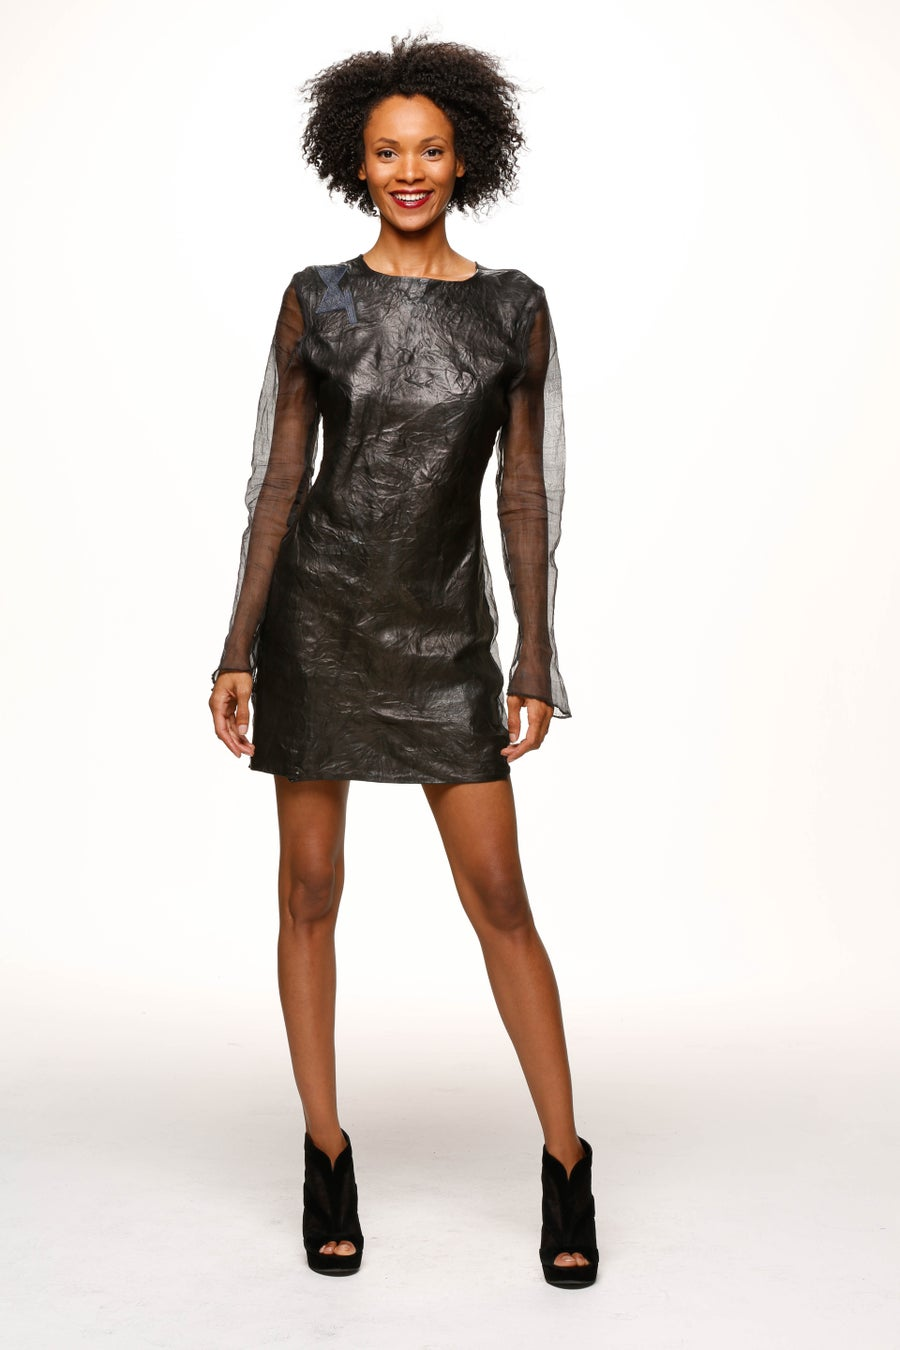 Image of Naz Ahimsa Silk and Leather Dress